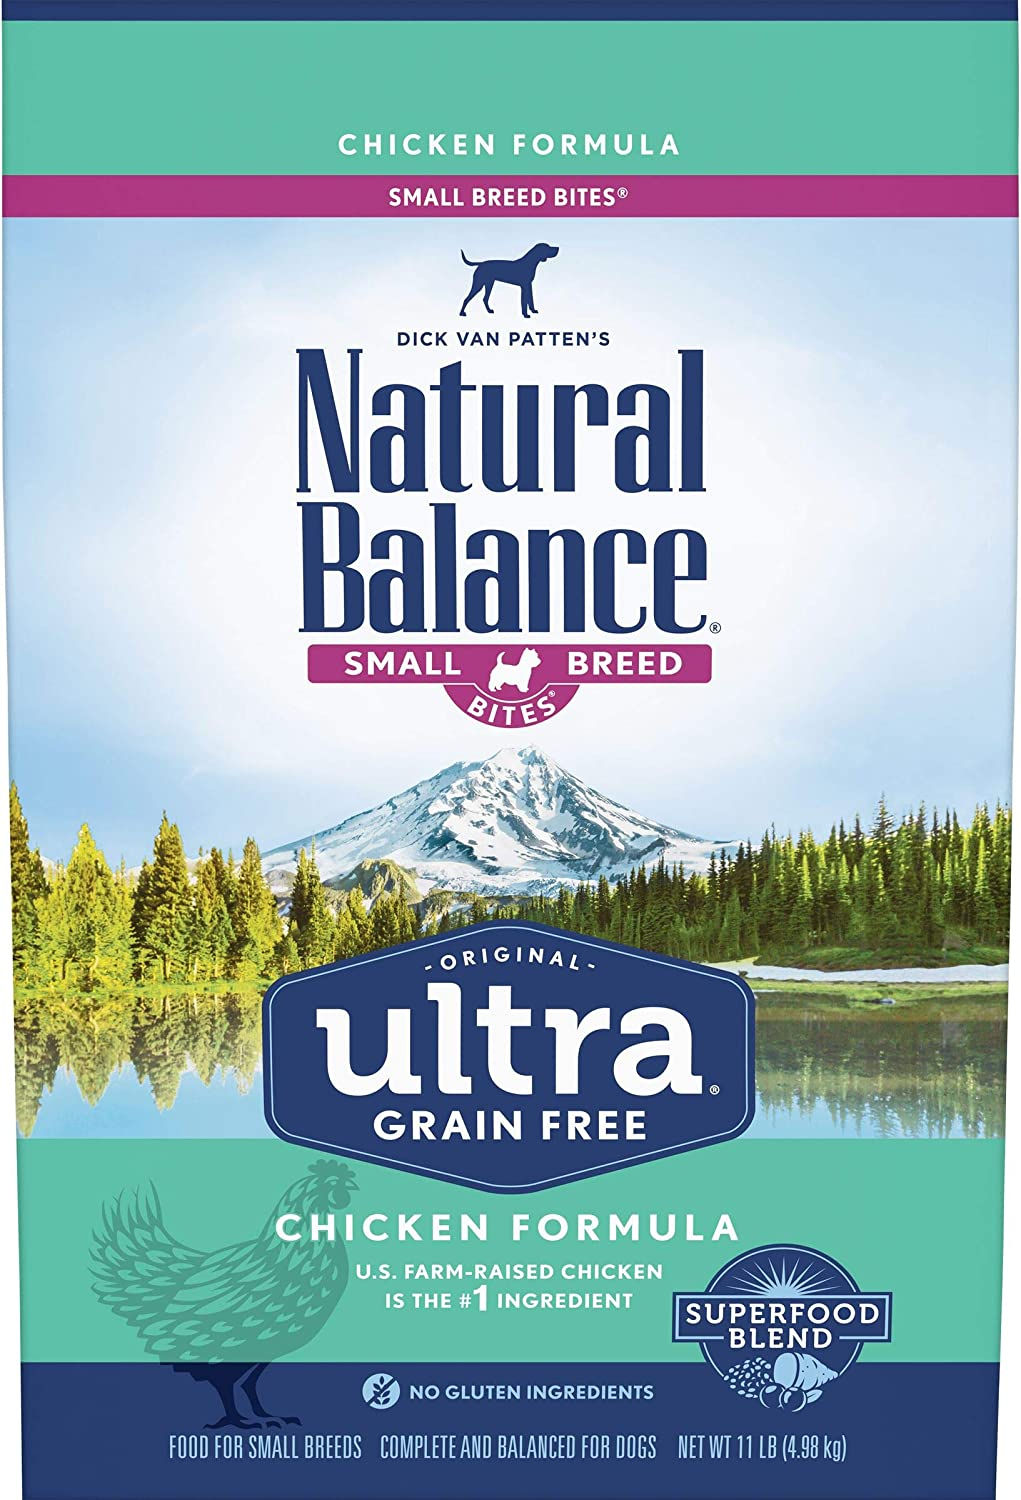 Natural Balance Original Ultra Small Breed Bites Grain Free Dry Dog Food, Chicken Formula